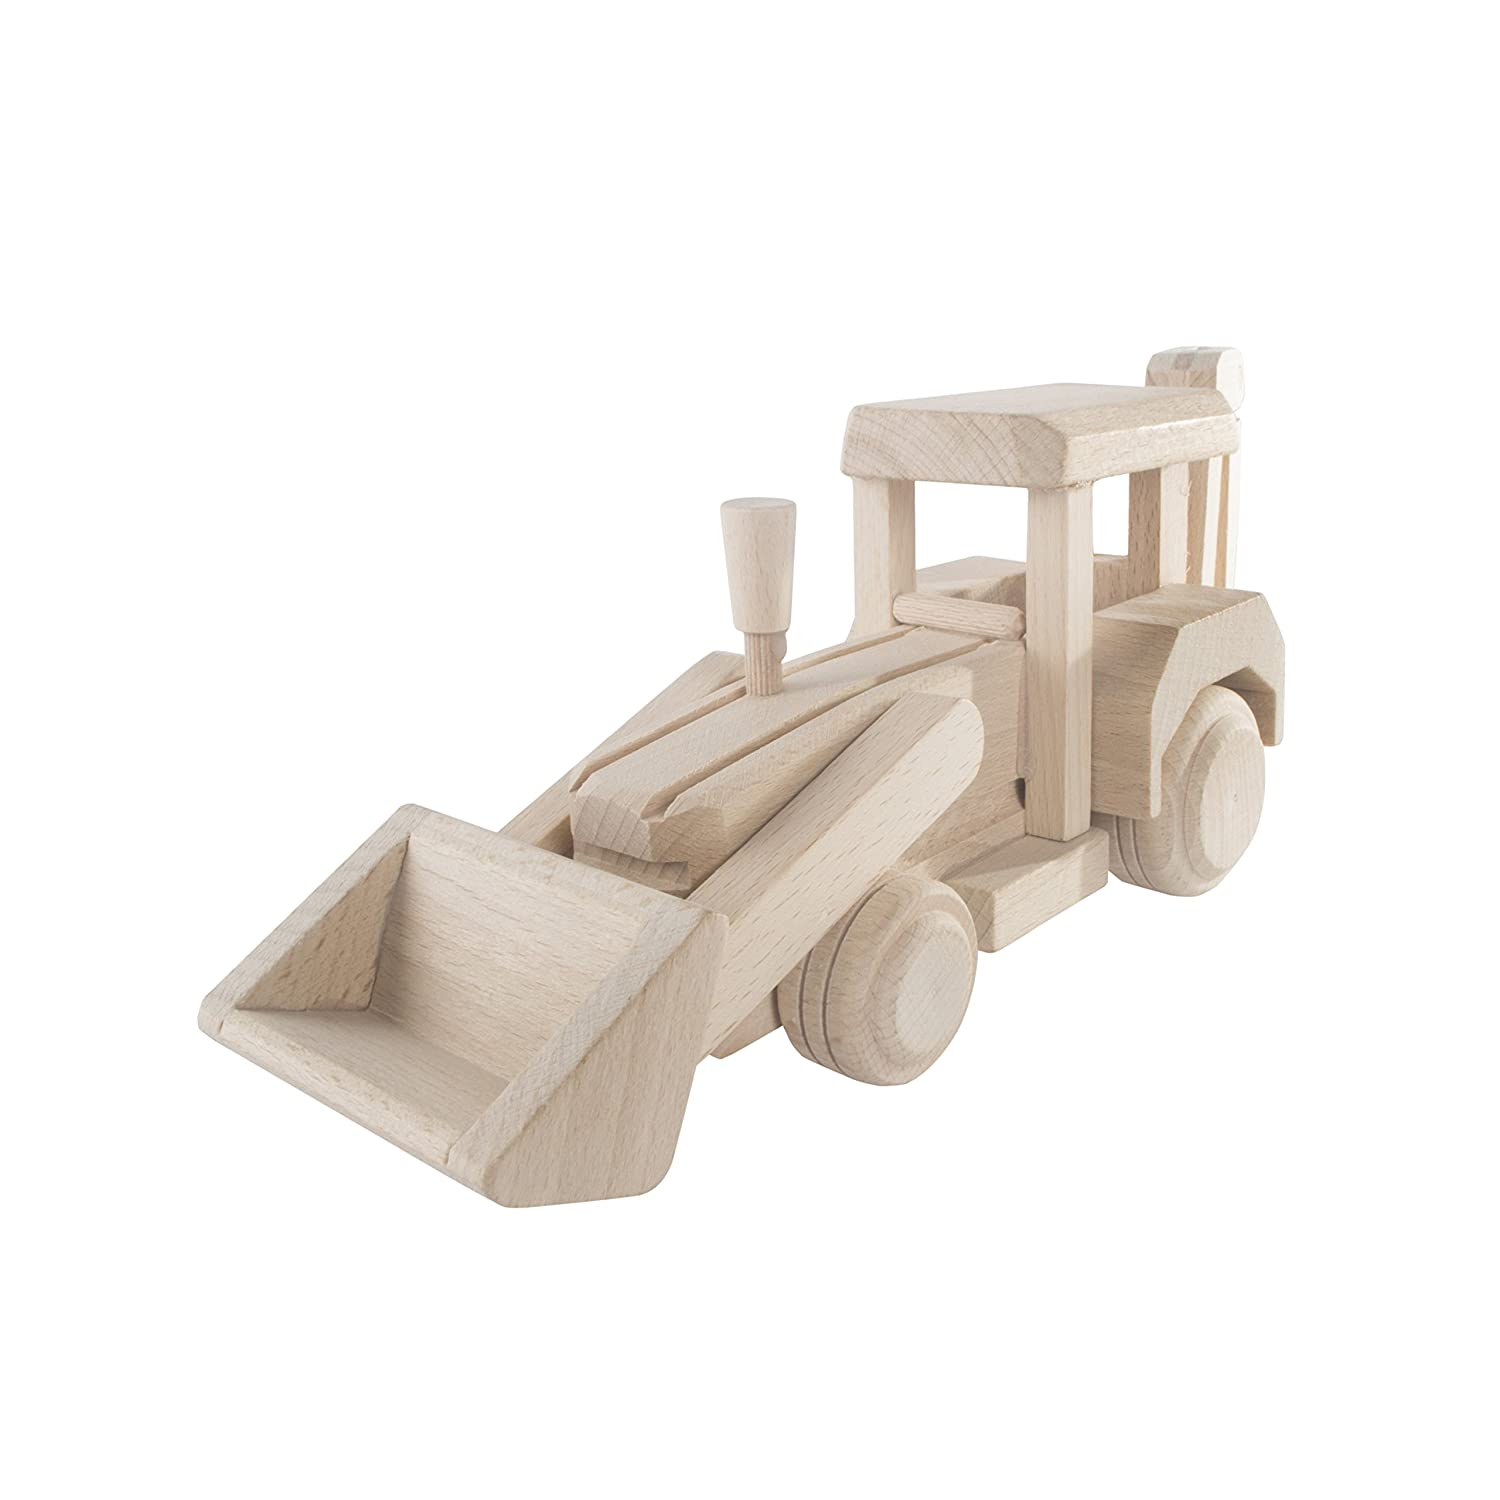 SEARCH BOX Wooden Tractor Pickup Truck Toy / Eco Friendly / Handmade / Art & Craft / Paint / 25x7x11 cm